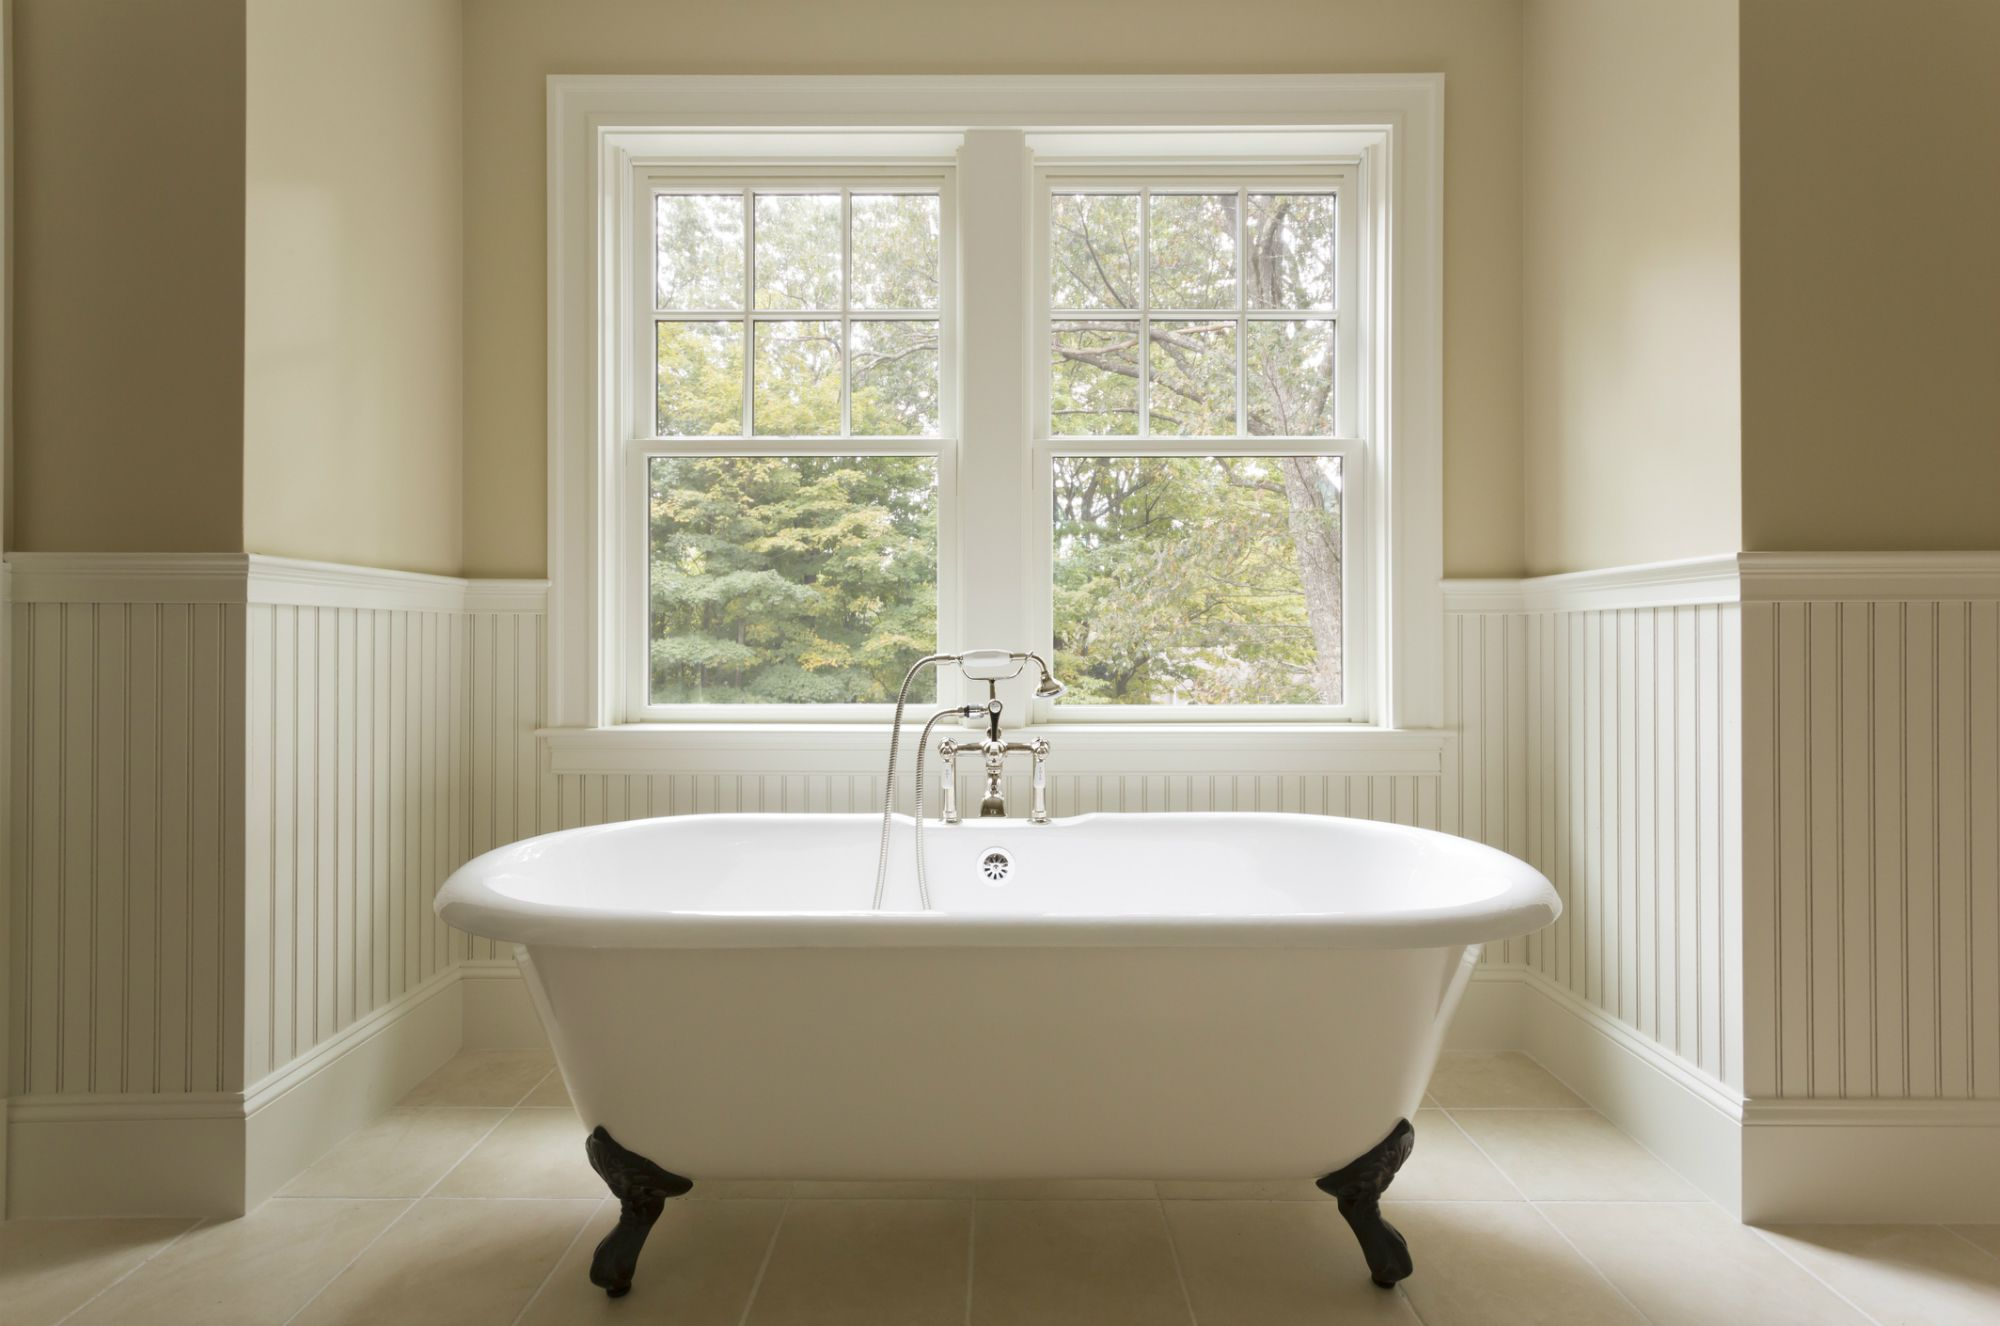 10 Beautiful Bathrooms With Clawfoot Tubs